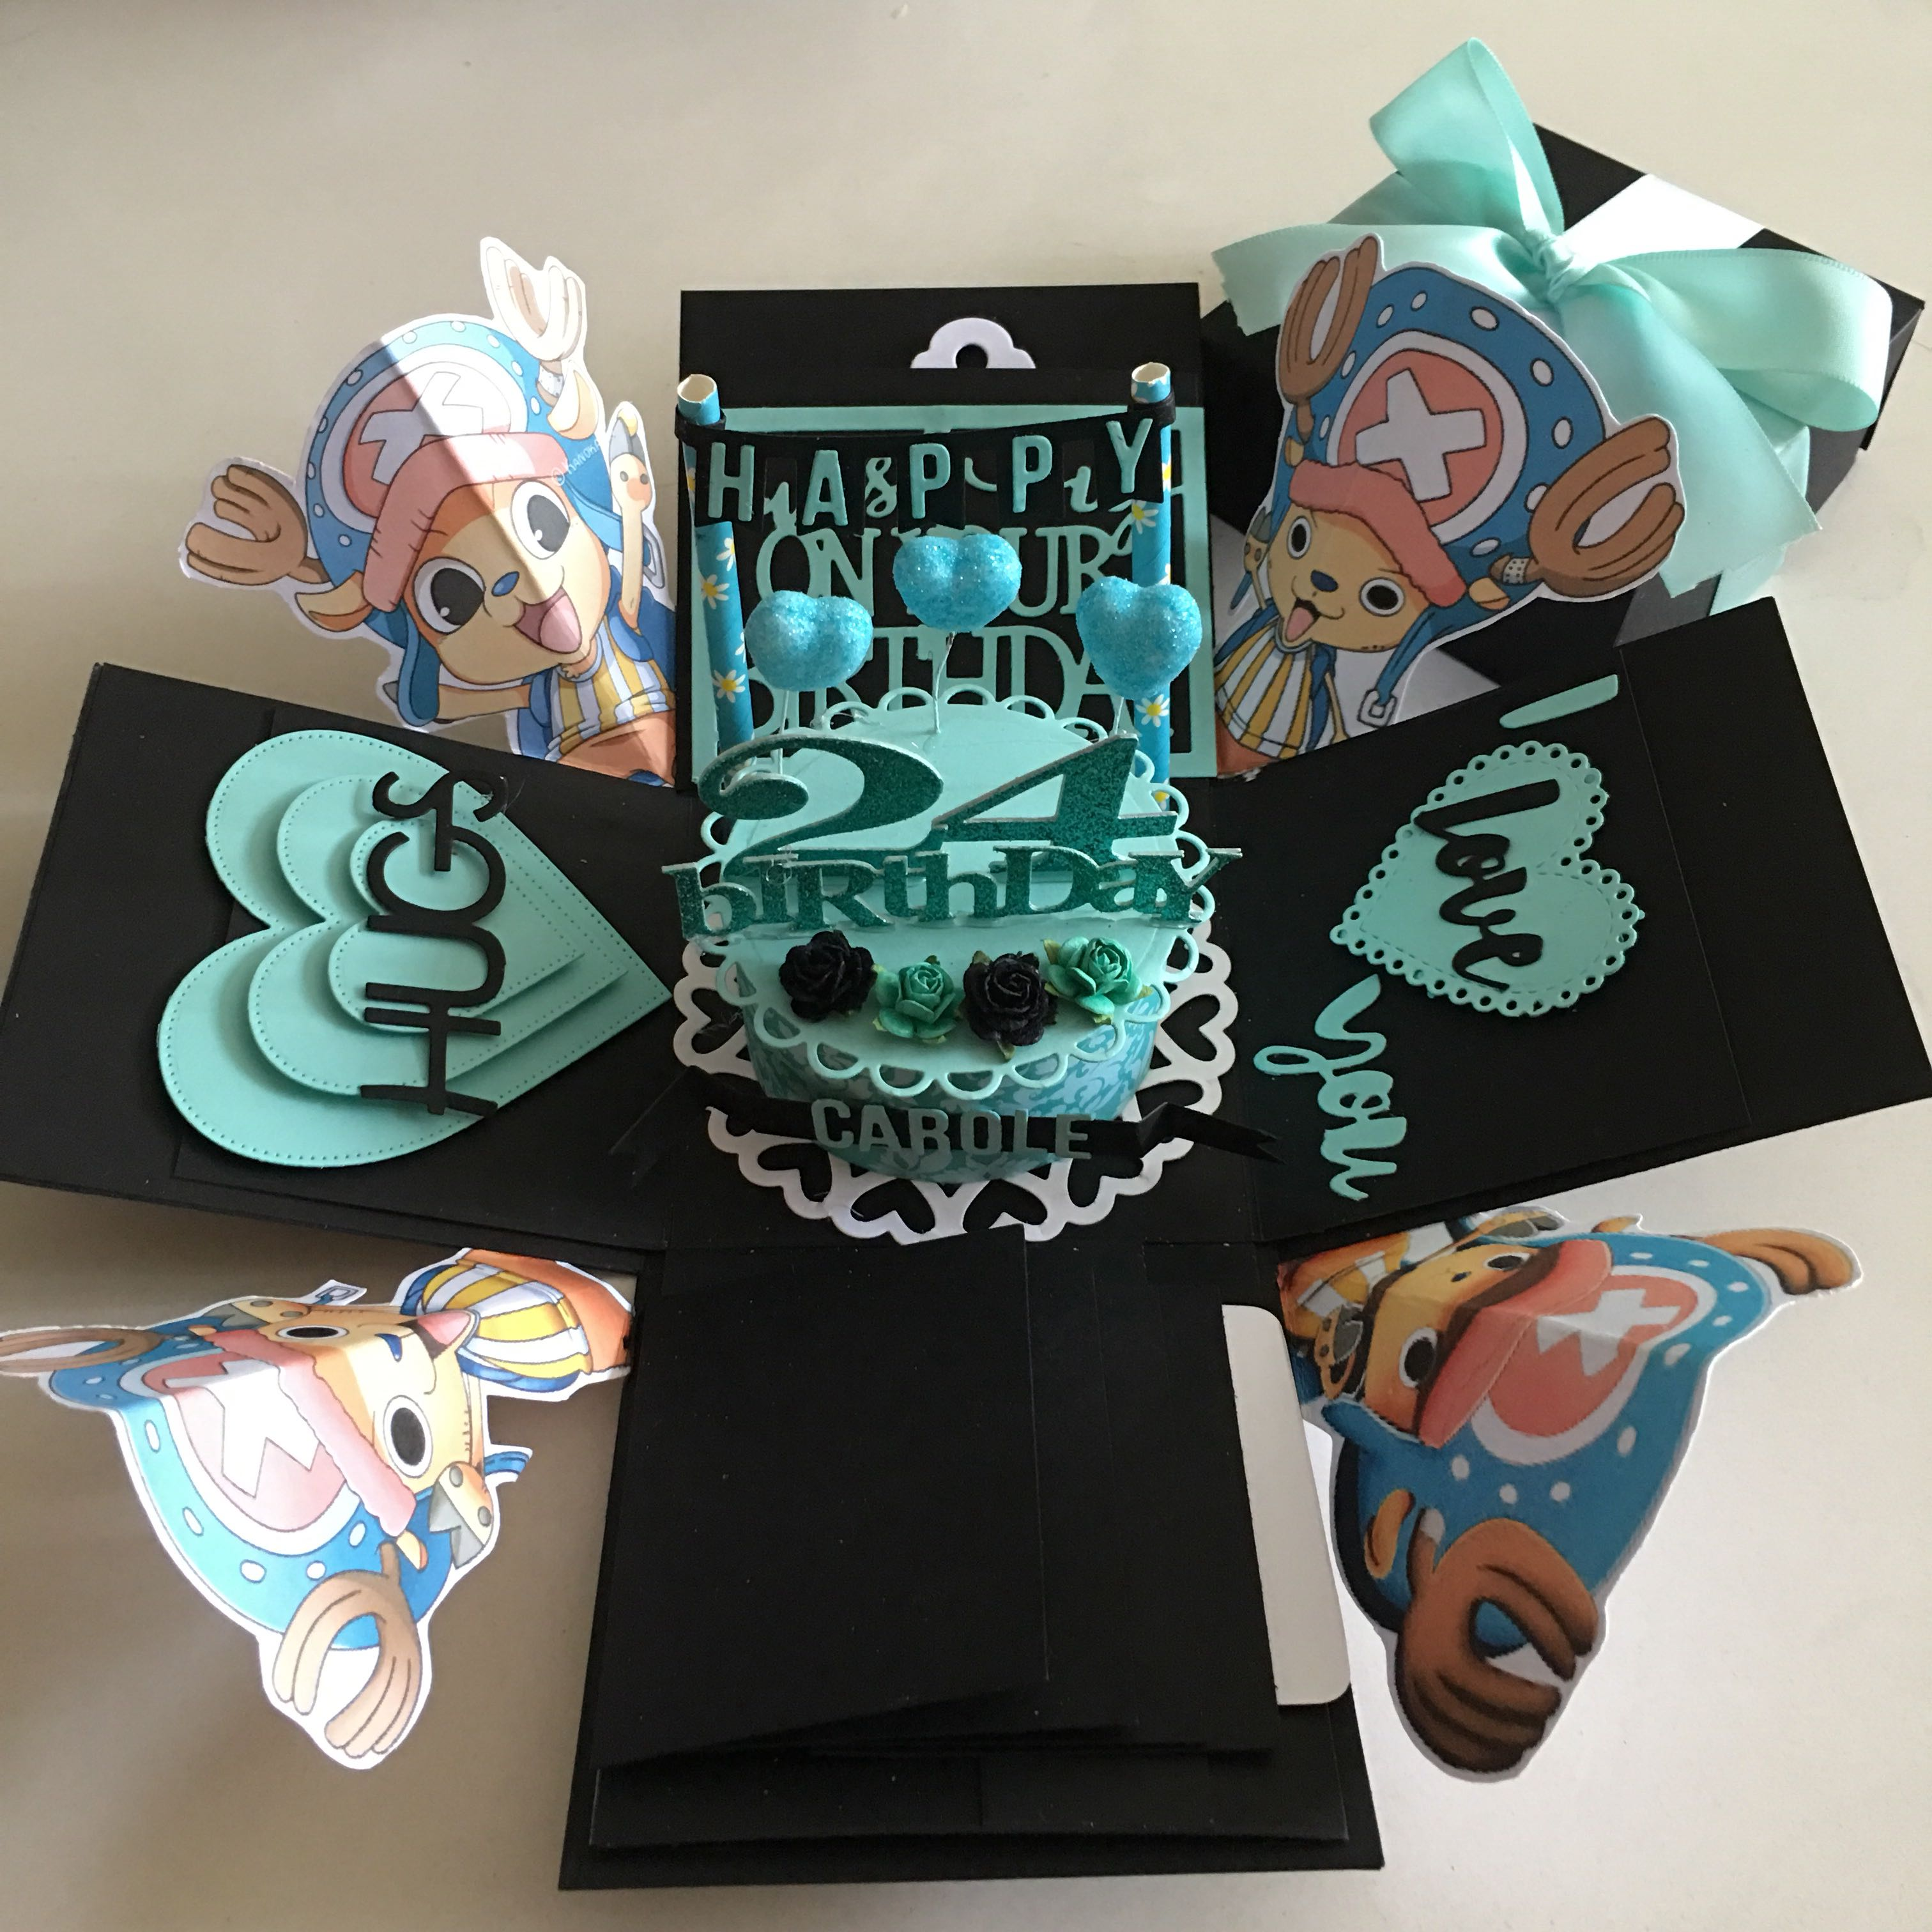 One Piece Chopper Explosion Box With Cake 4 Waterfall In Black